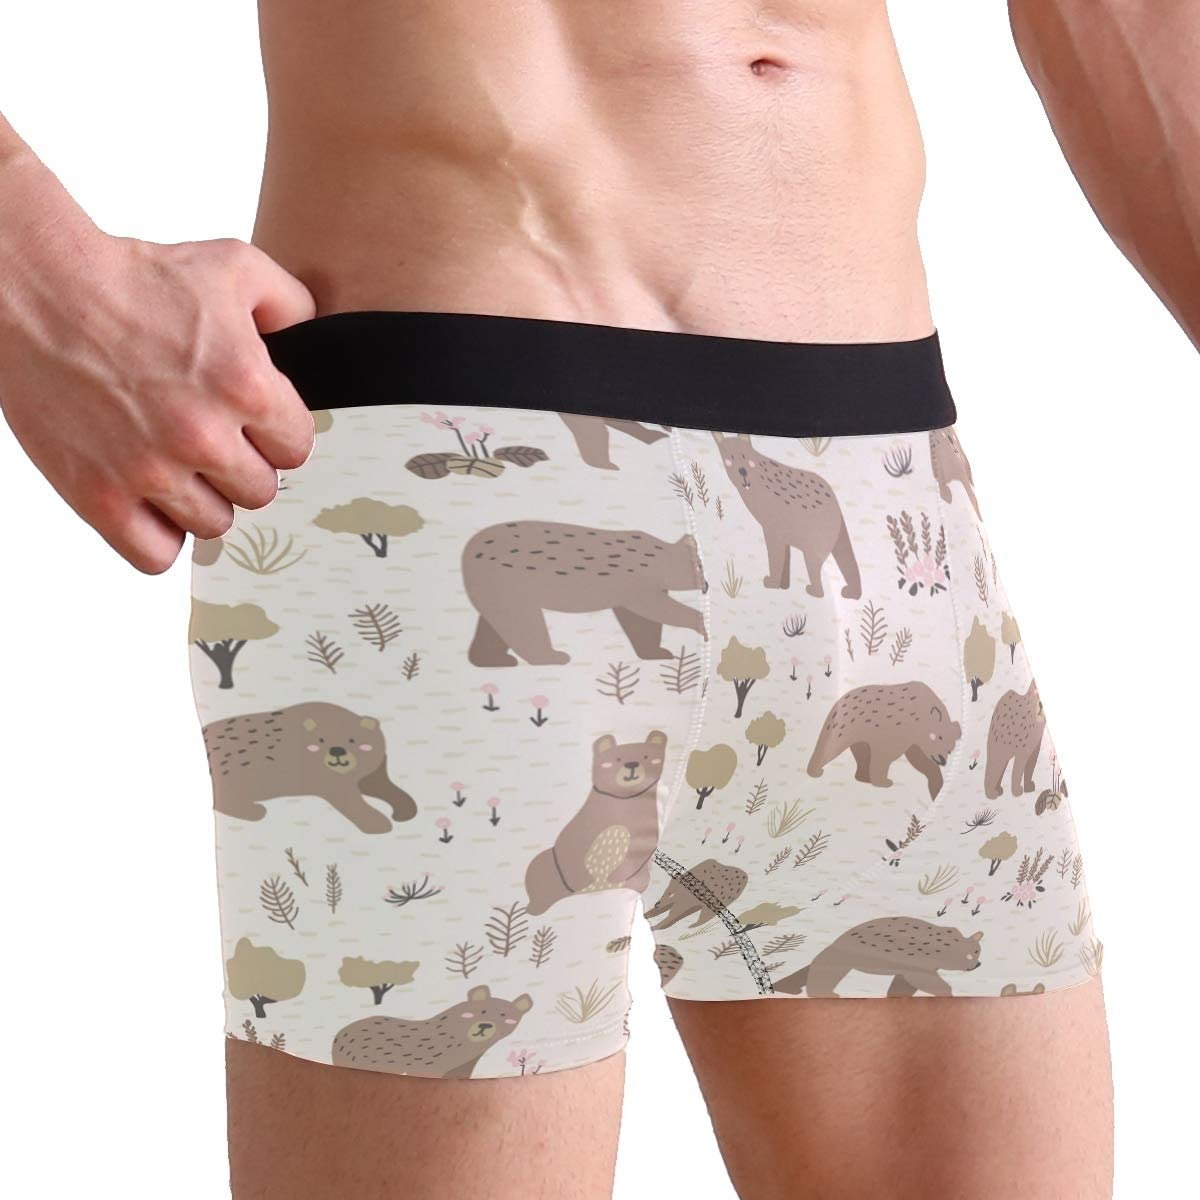 Pack of 2 Bear Pattern Mens Underwear Soft Polyester Boxer Brief Birthday Christmas Gifts for Men Boyfriend Teen Boys Children Friends Family